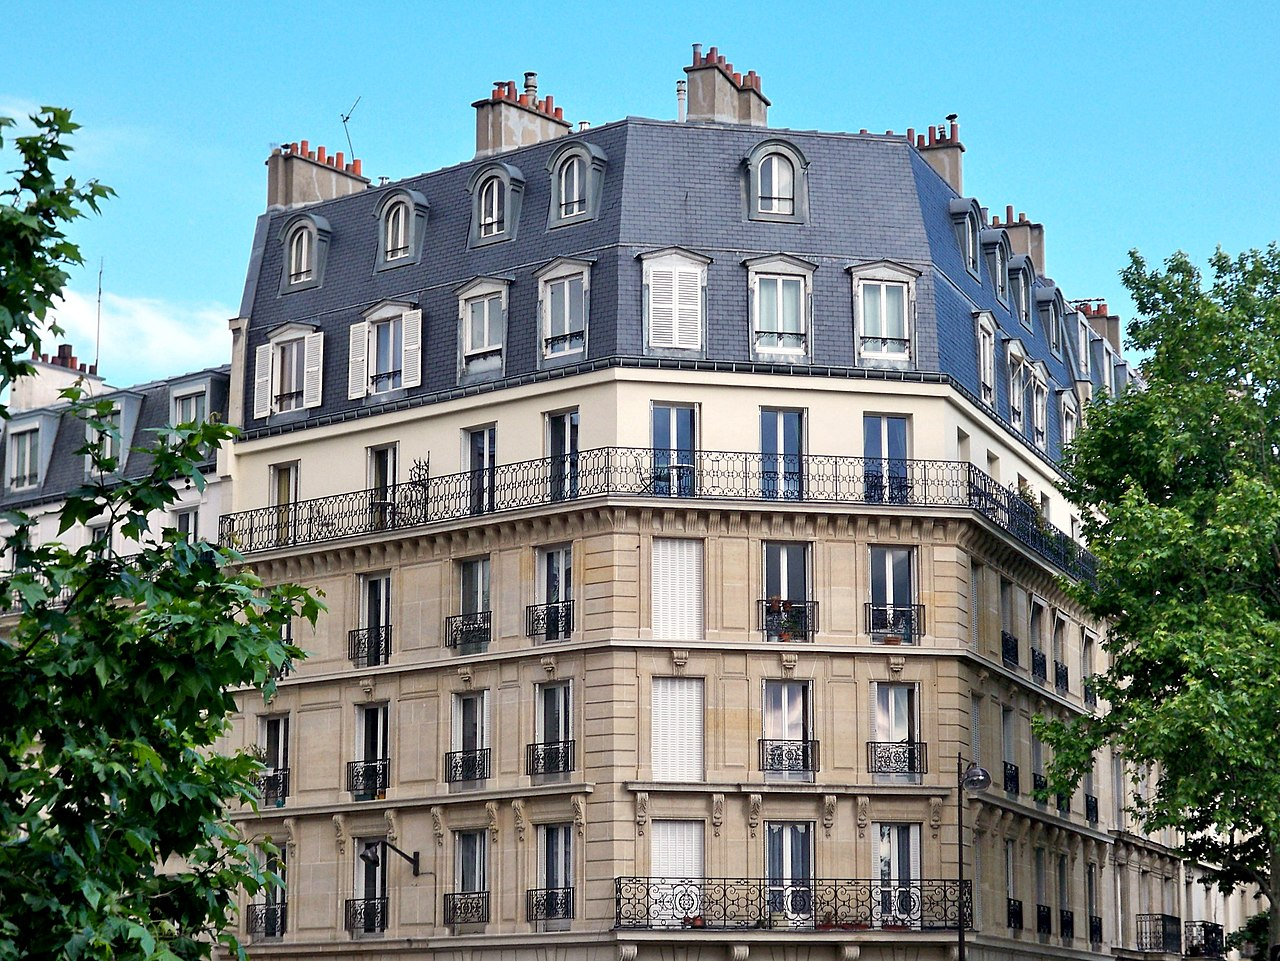 file:typical paris apartment - wikimedia commons